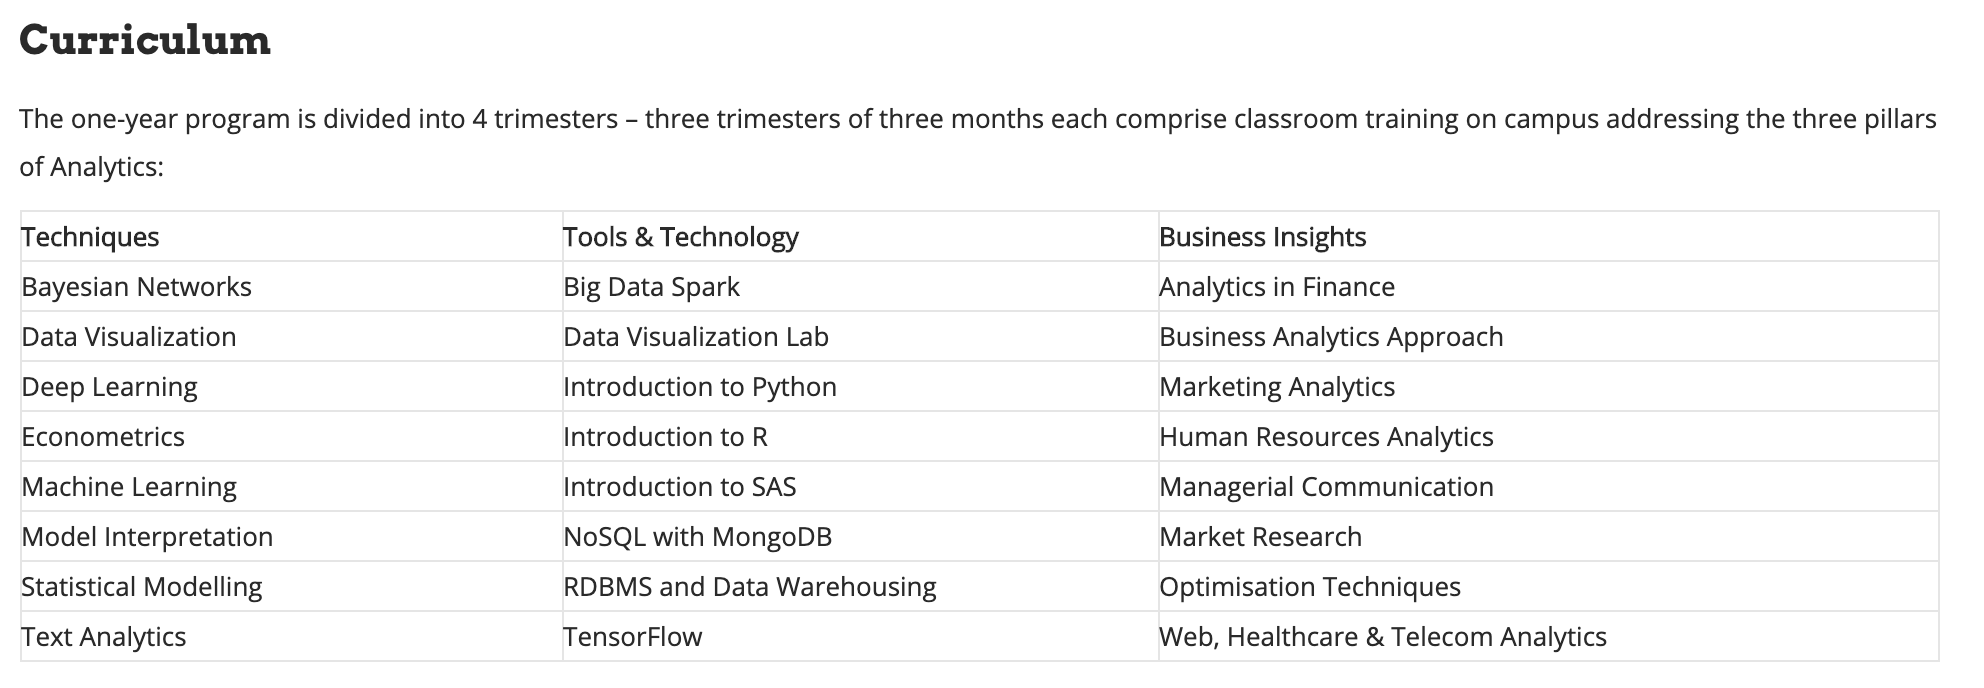 8 Awesome Data Science Capstone Projects from Praxis